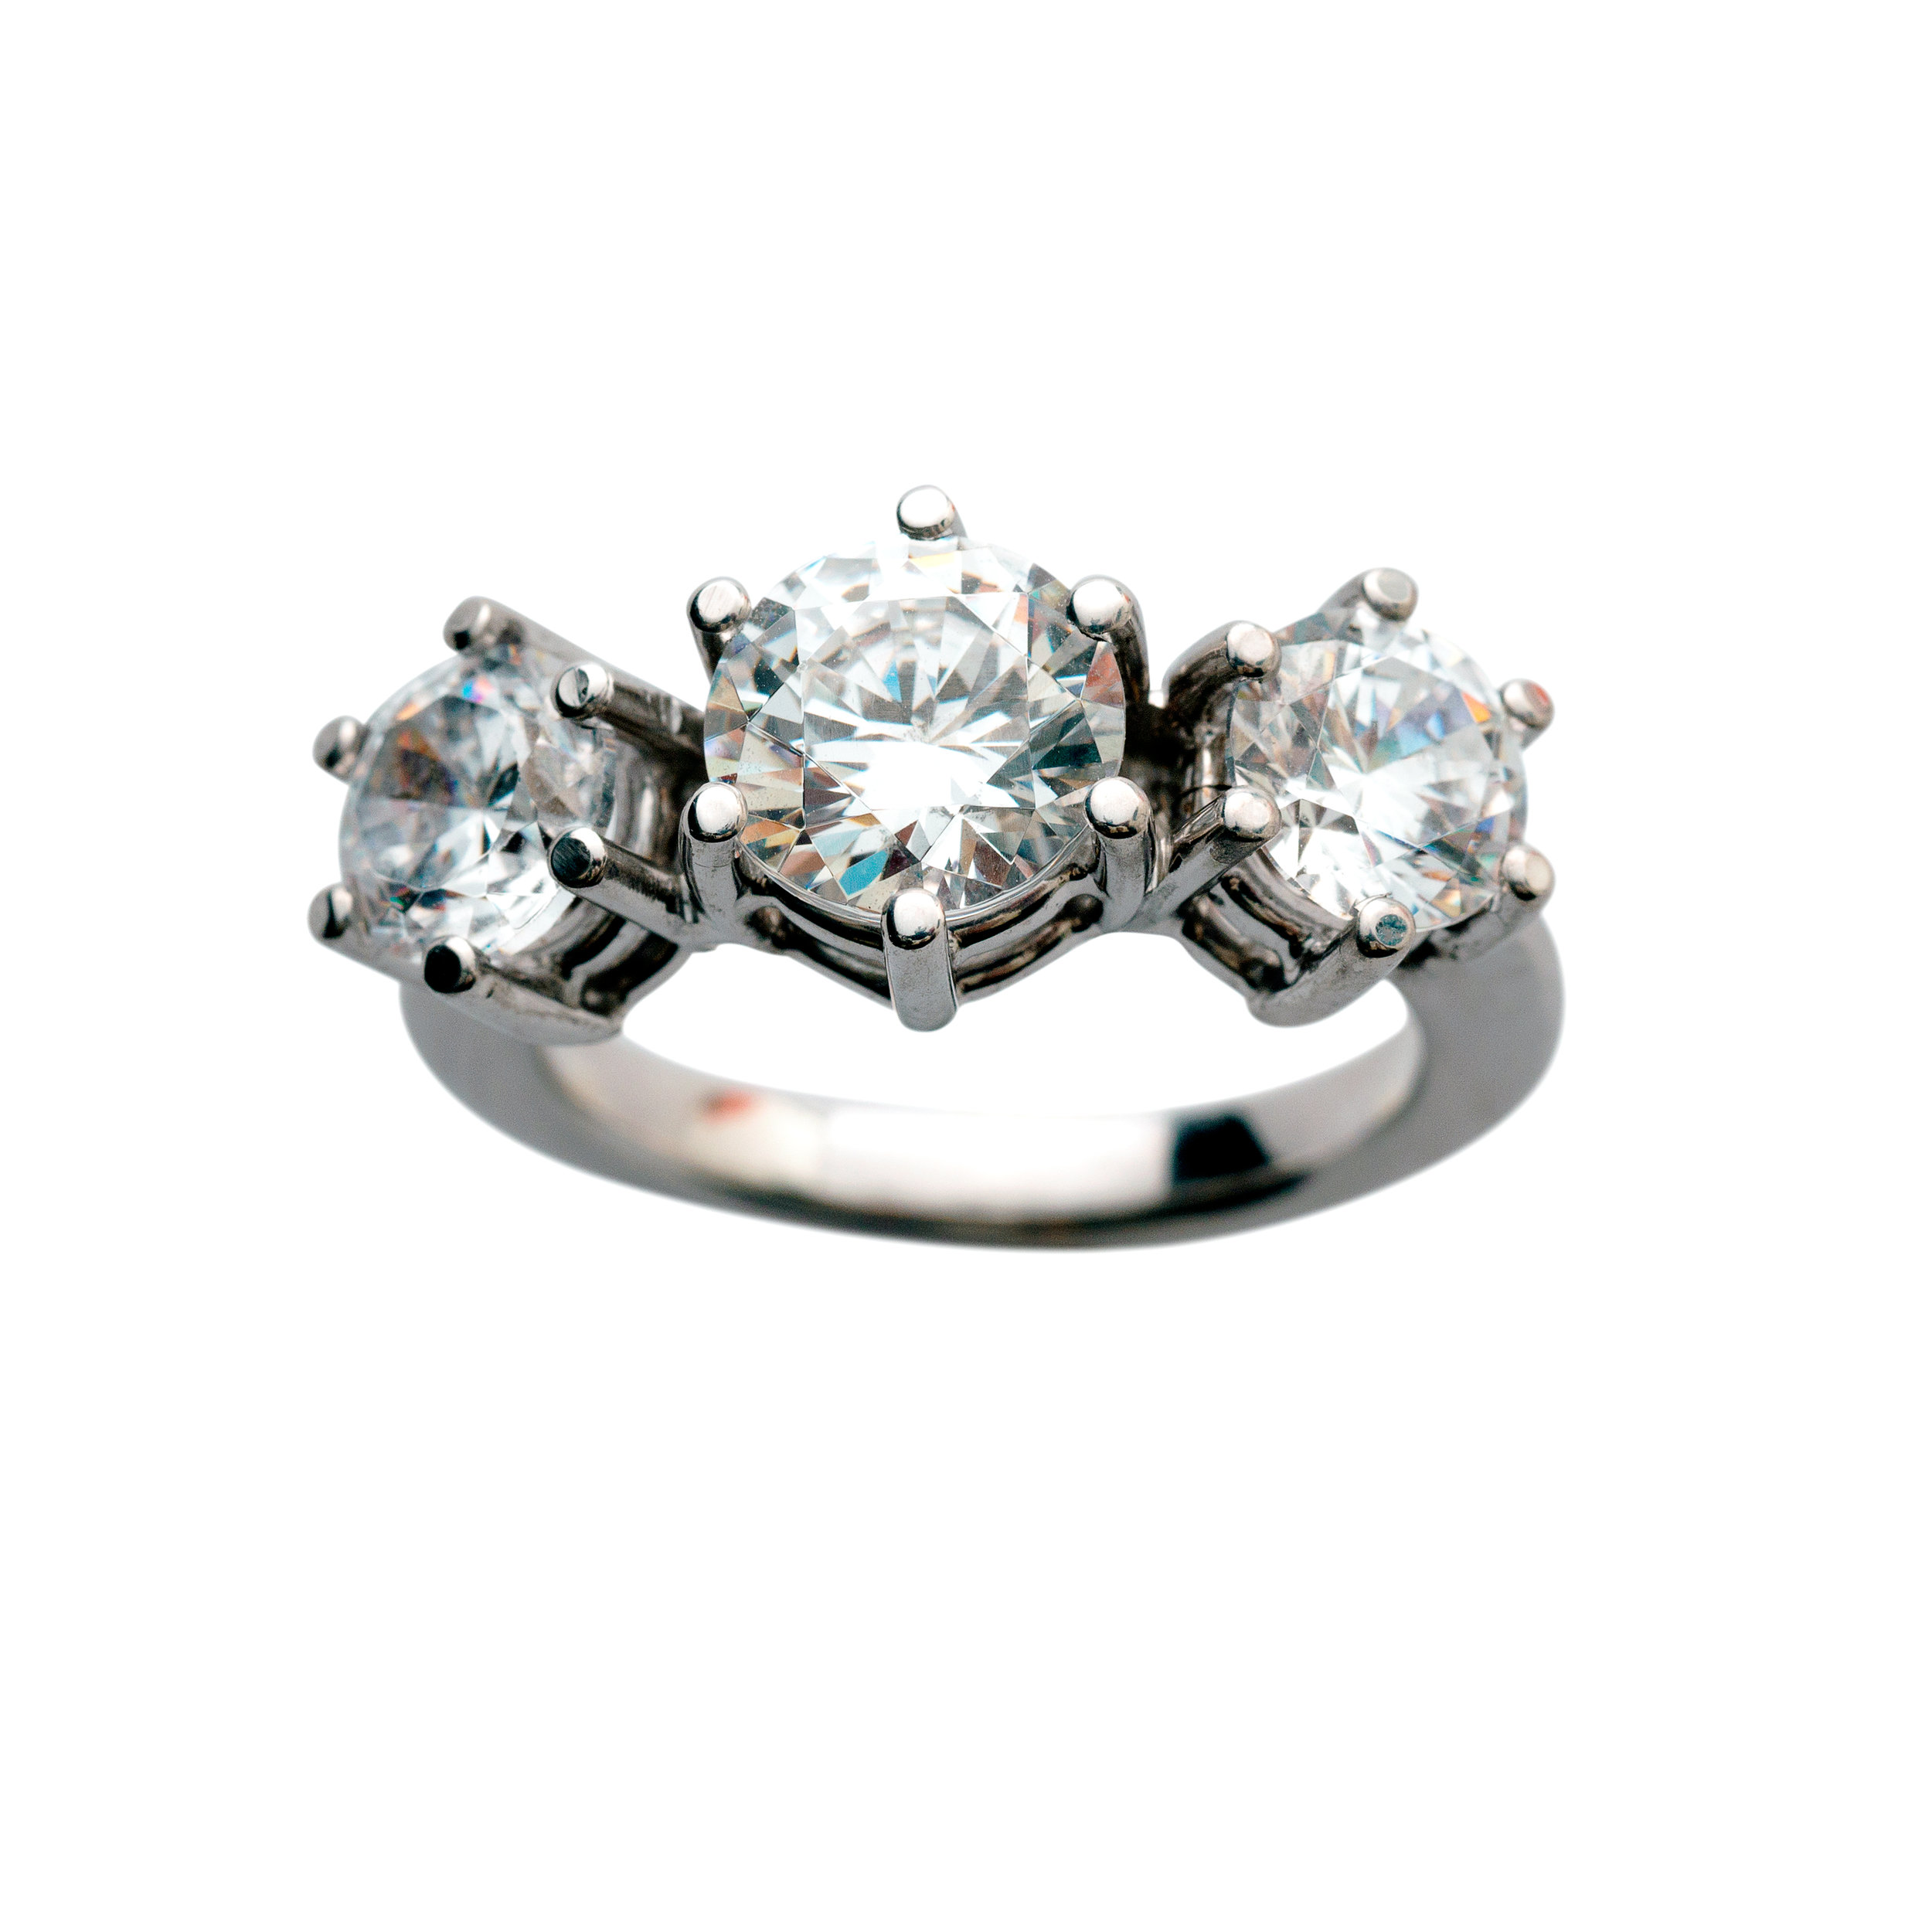 SPECIAL PIECE - PRICE UPON REQUEST. 18 kt gold and diamonds